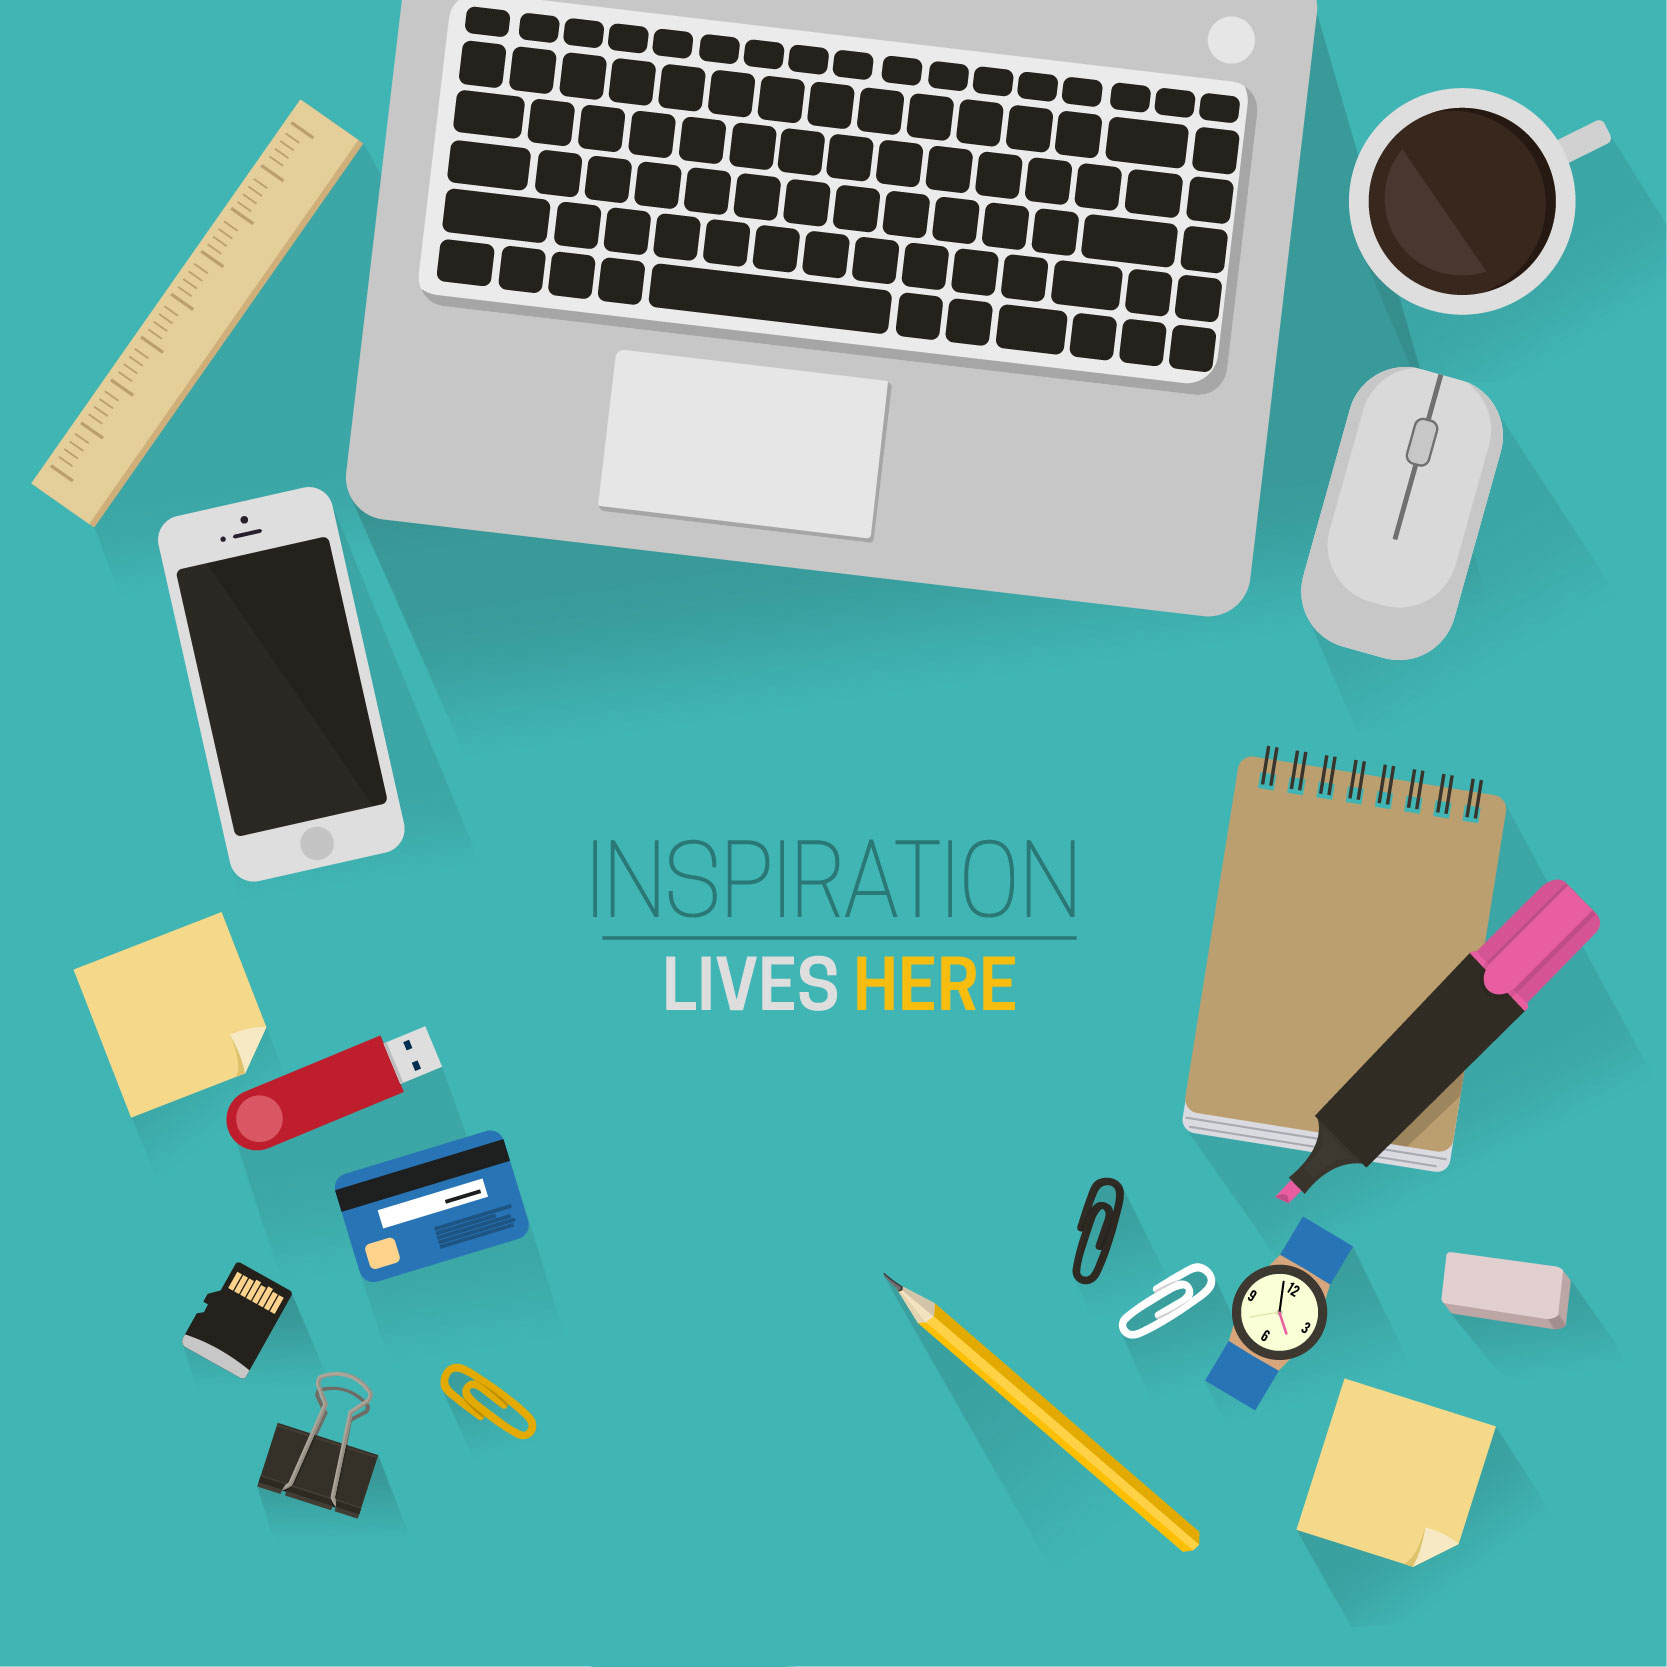 5 Ways to Find Inspiration for Tech Design